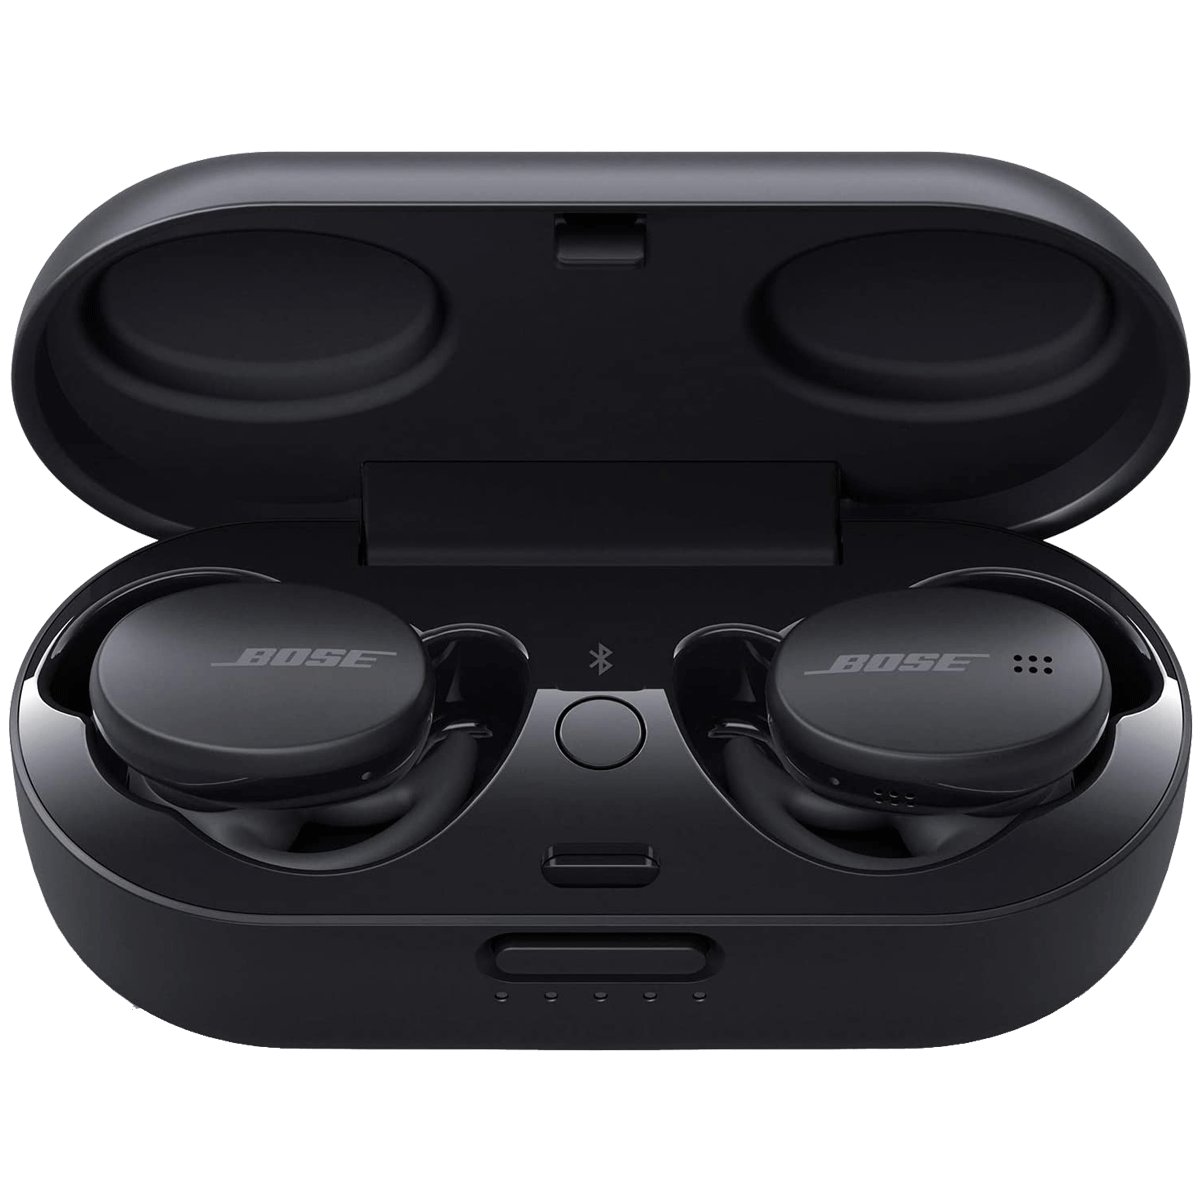 Bose Sport In-Ear Truly Wireless Earbuds with Mic (Bluetooth 5.0, Weather and Sweat Resistant, 805746-0010, Triple Black)_1